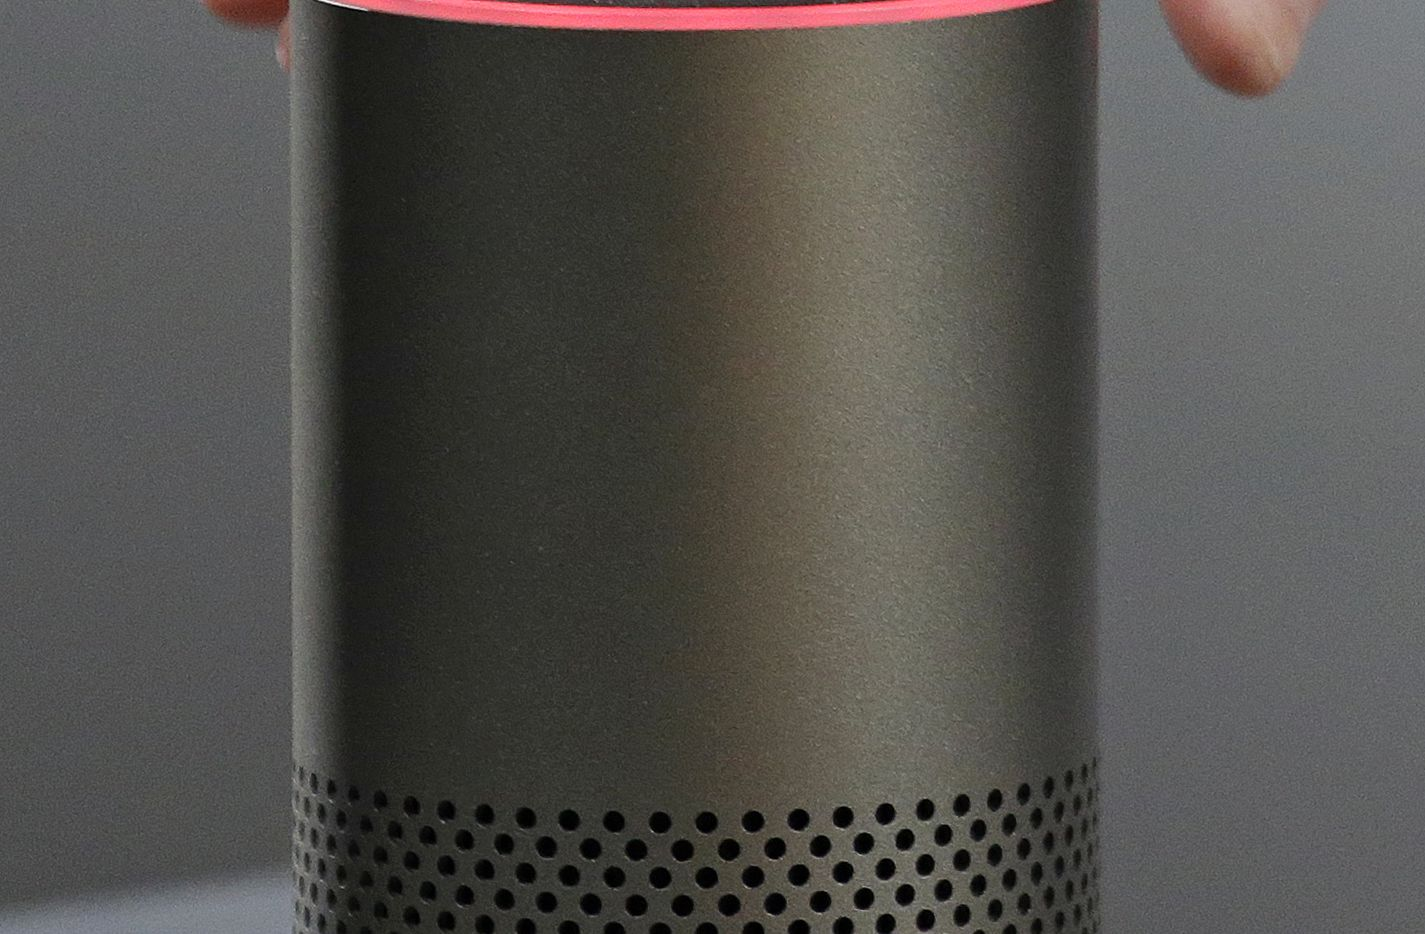 As you add more devices like the Amazon Echo to your home's internet network, it's important to think about keeping your network safe.